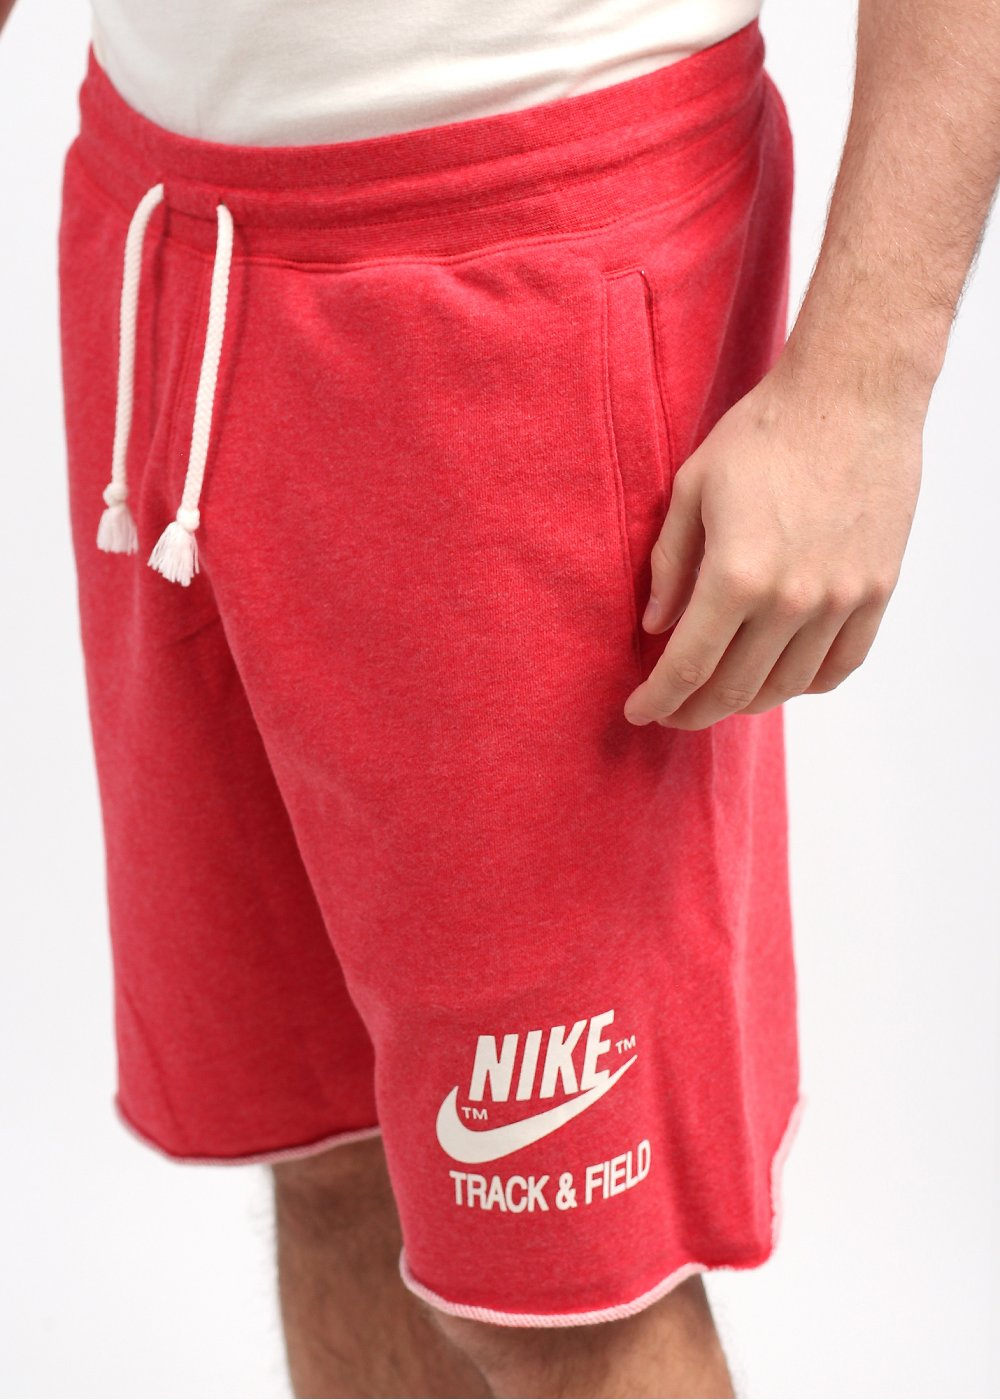 nike shorts track and field